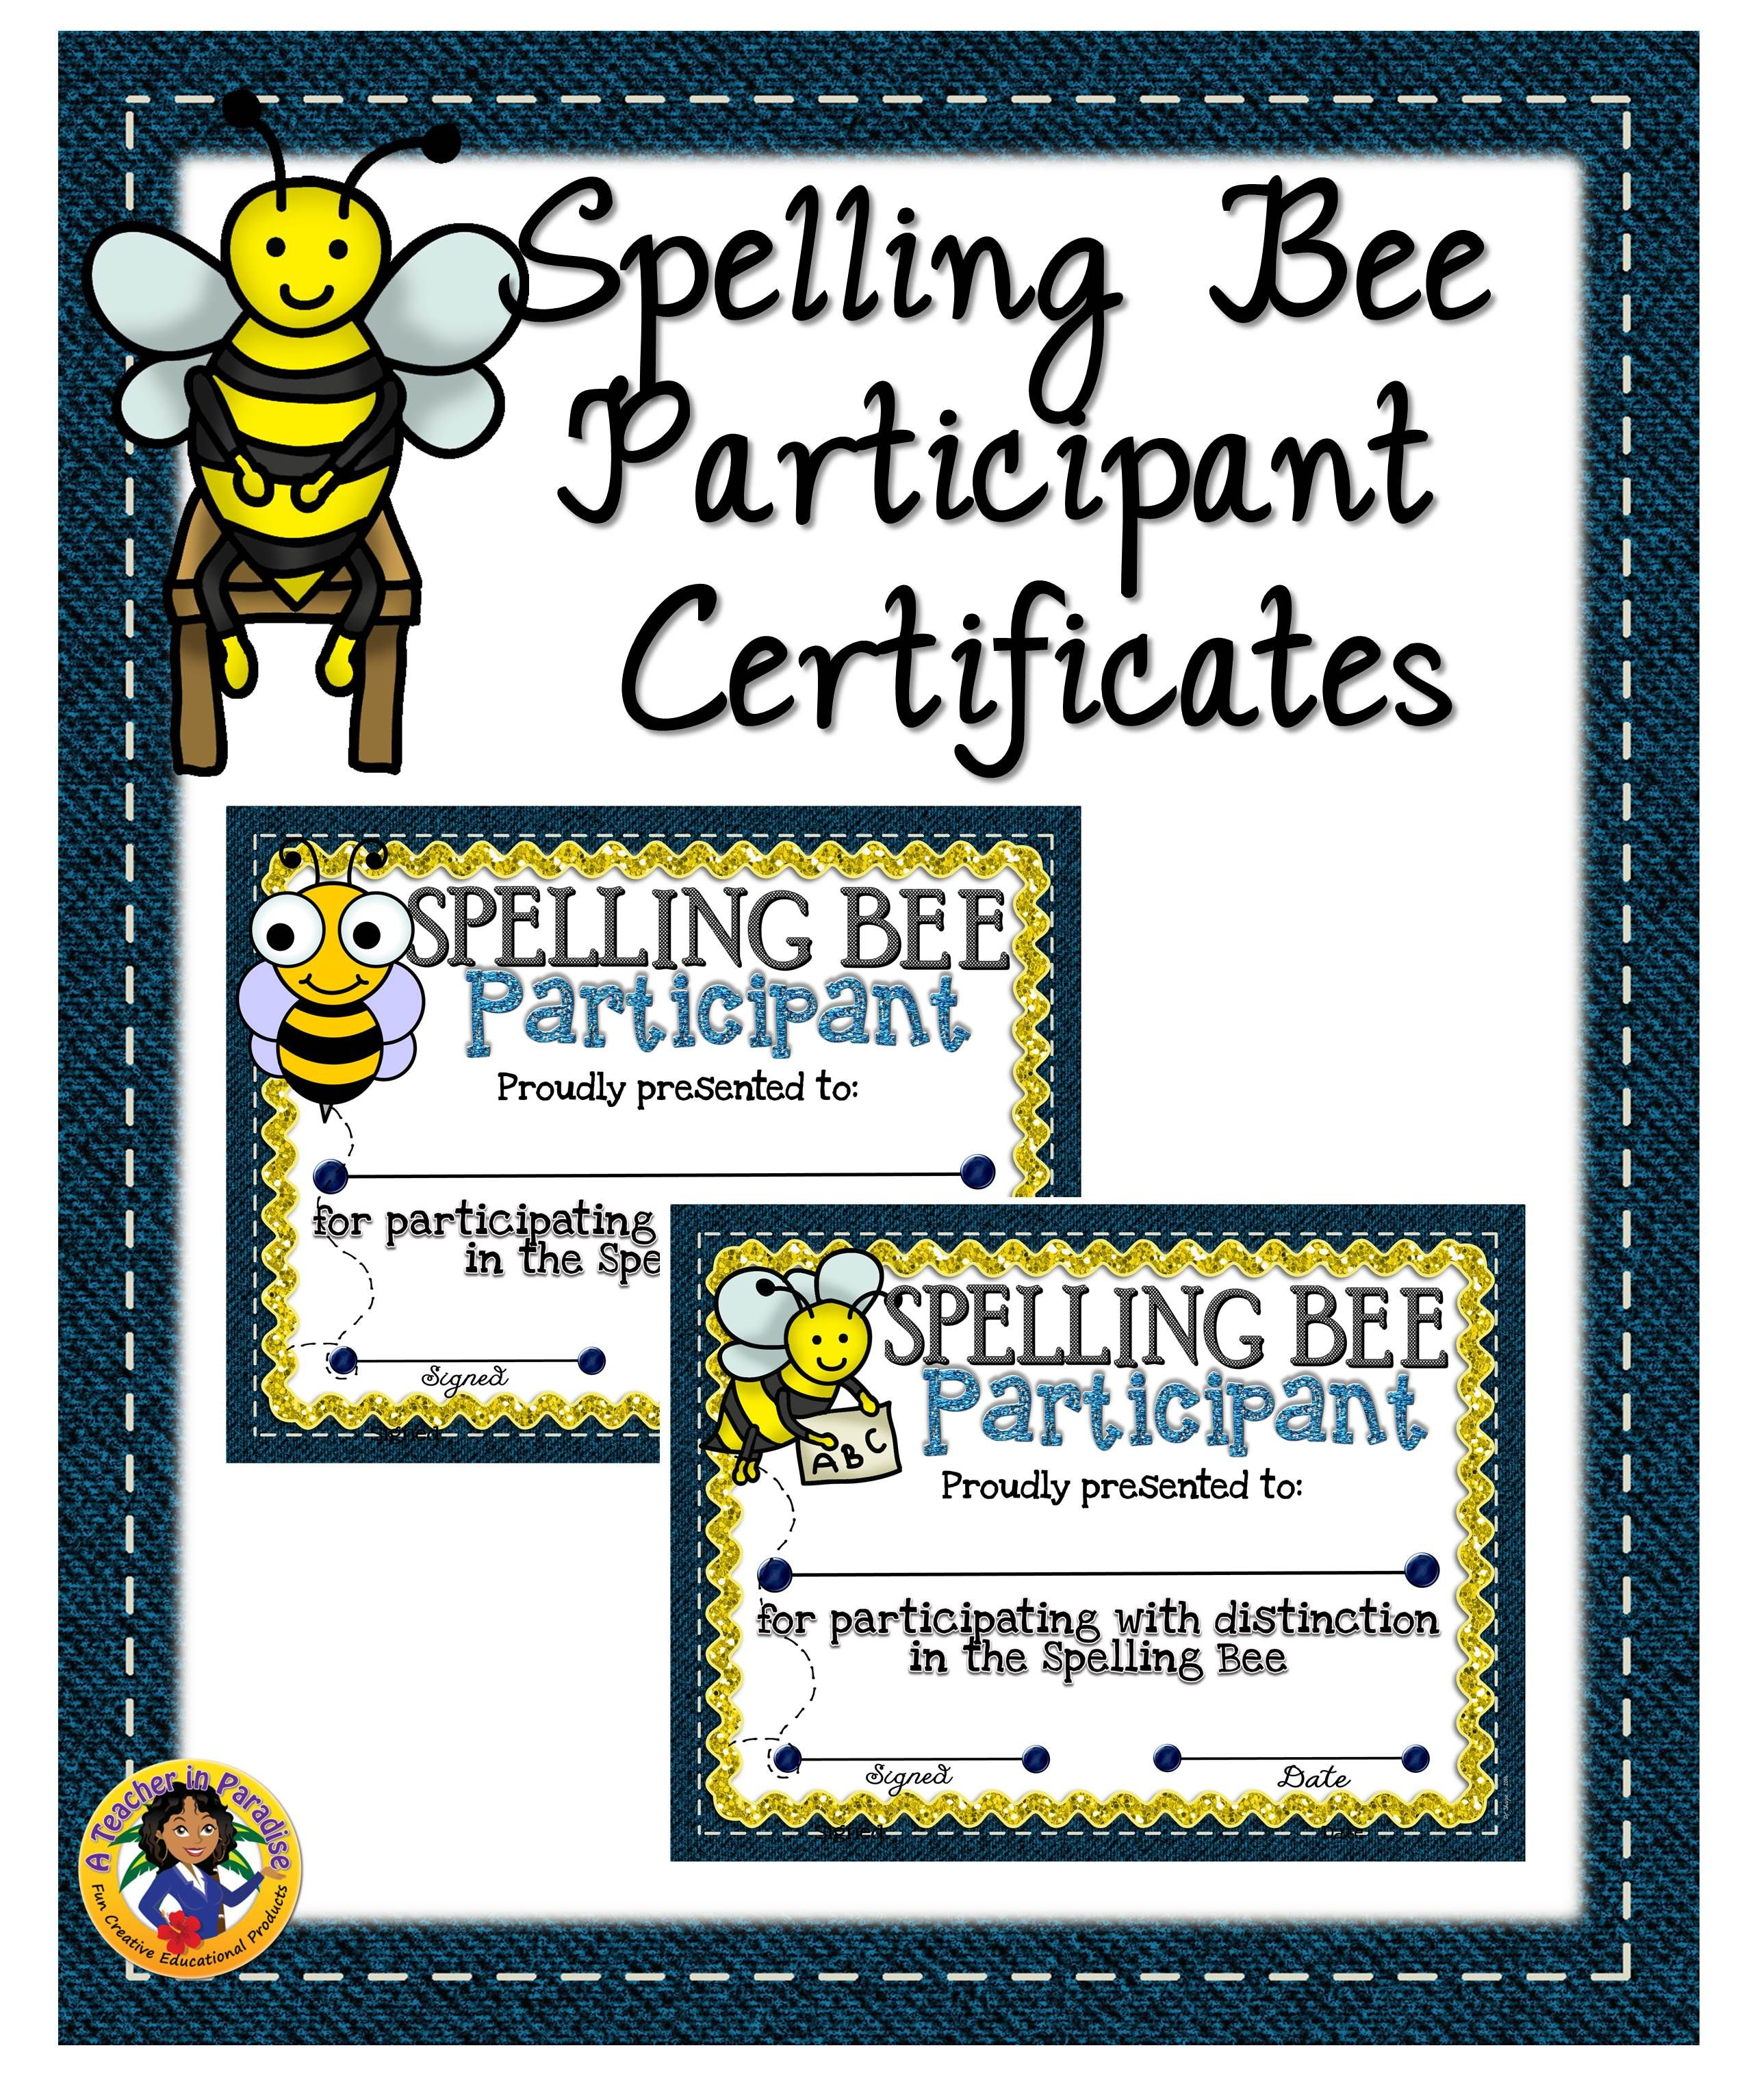 Spelling Bee Participant Certificates Certificate Bees And Students